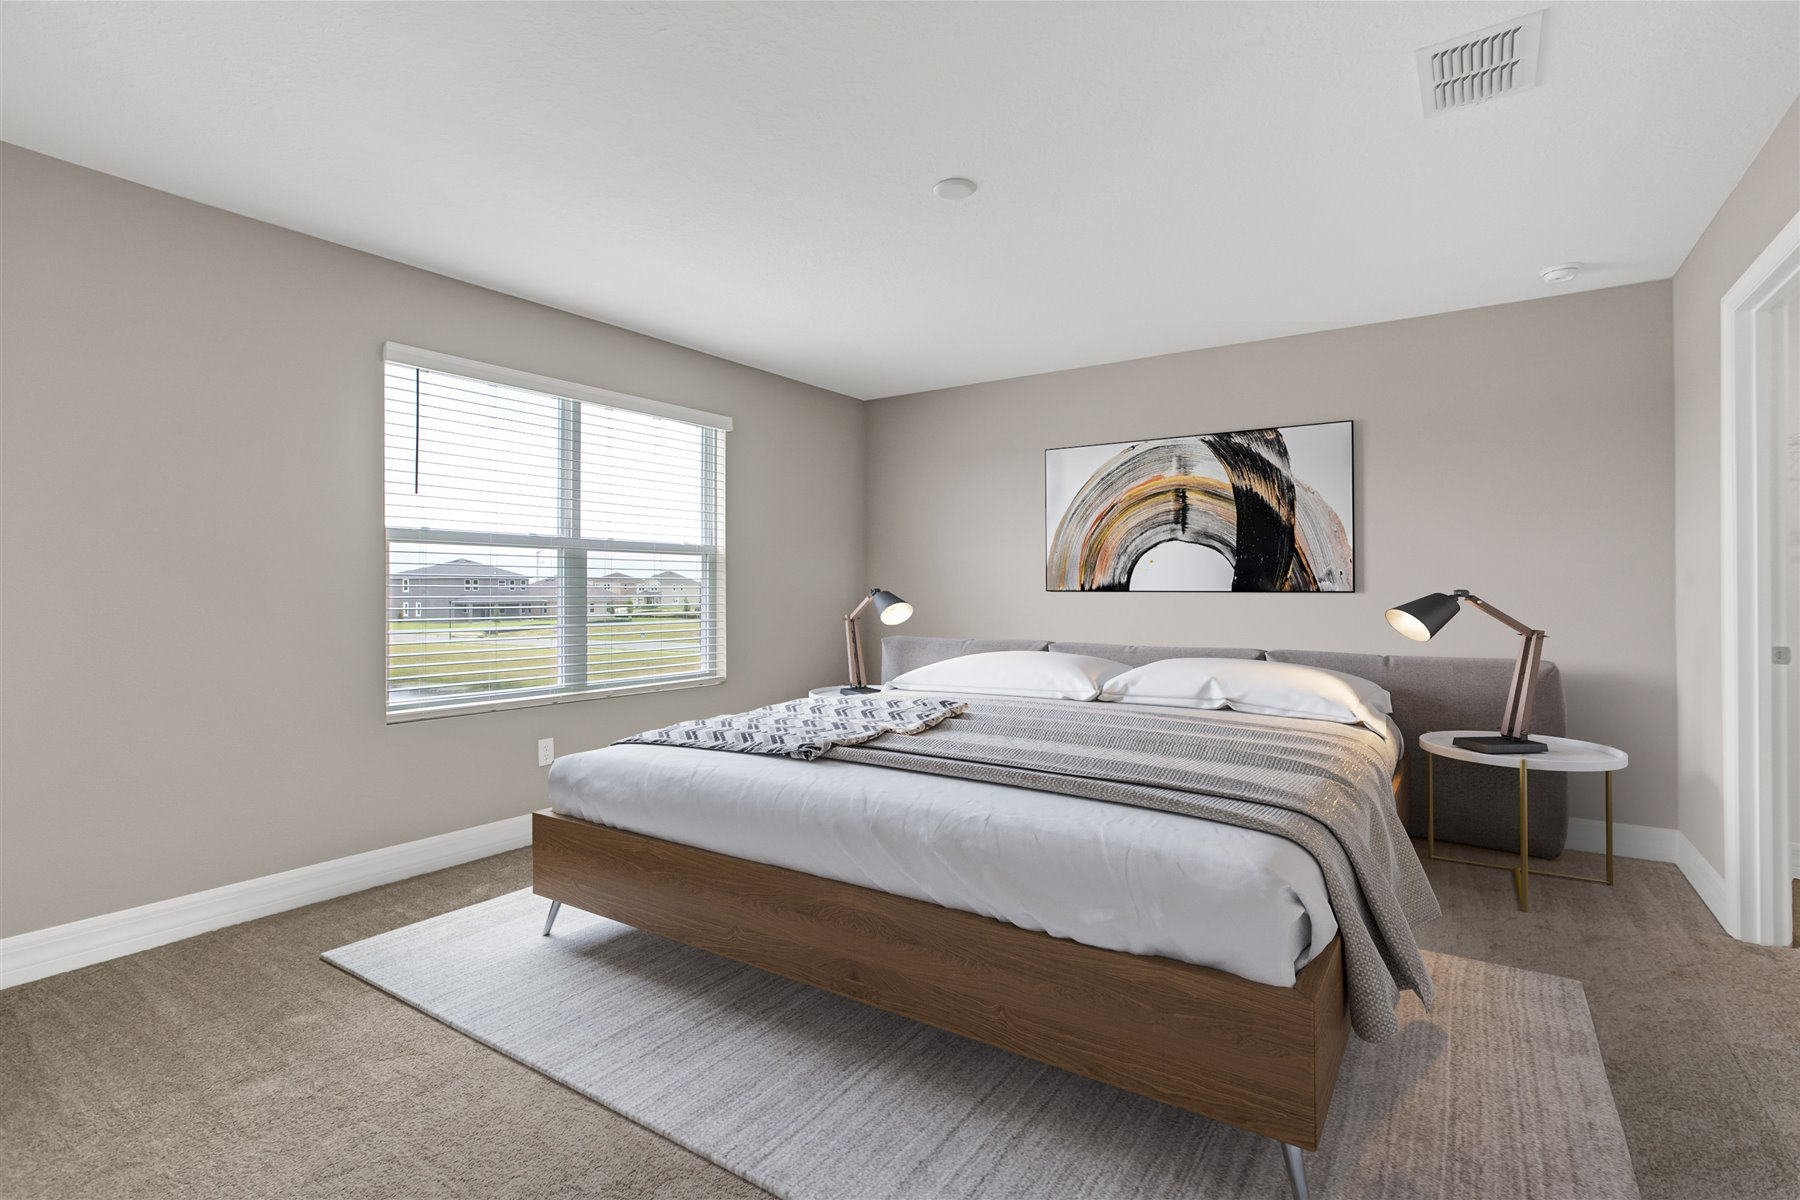 Belmont Plan Bedroom at Tohoqua in Kissimmee Florida by Mattamy Homes